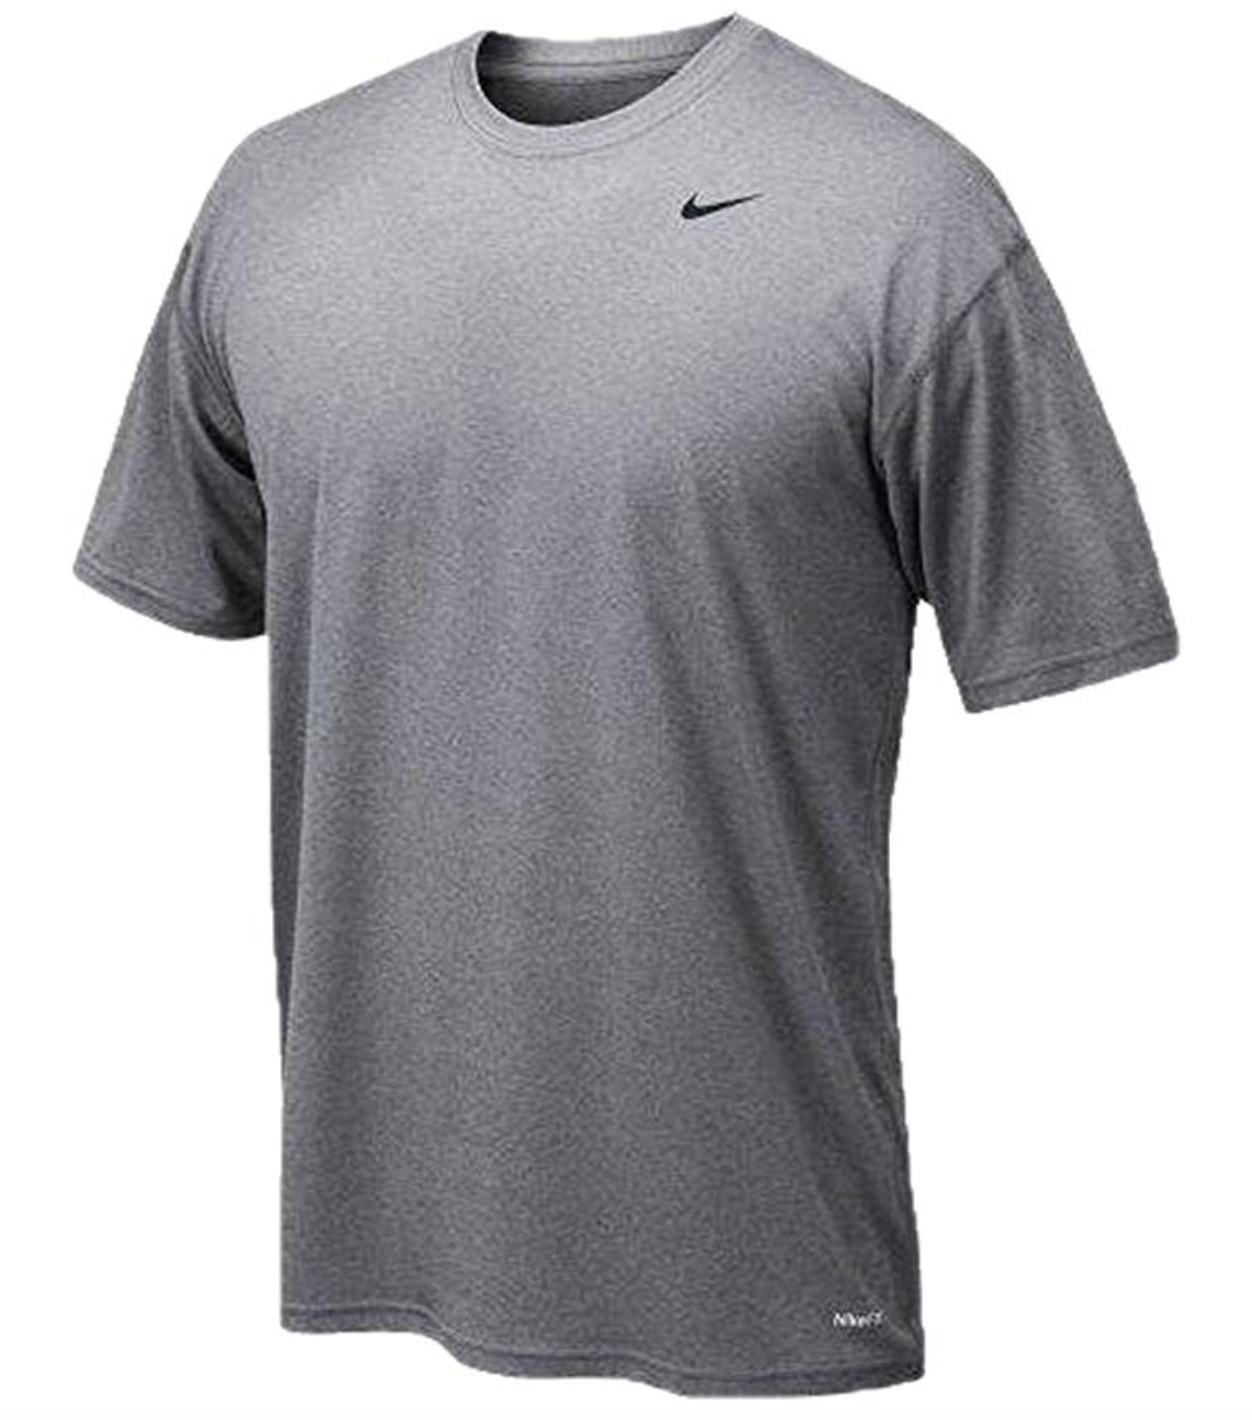 Mens Nike Workout Shirt - Perfect Gift for Boyfriend This Christmas